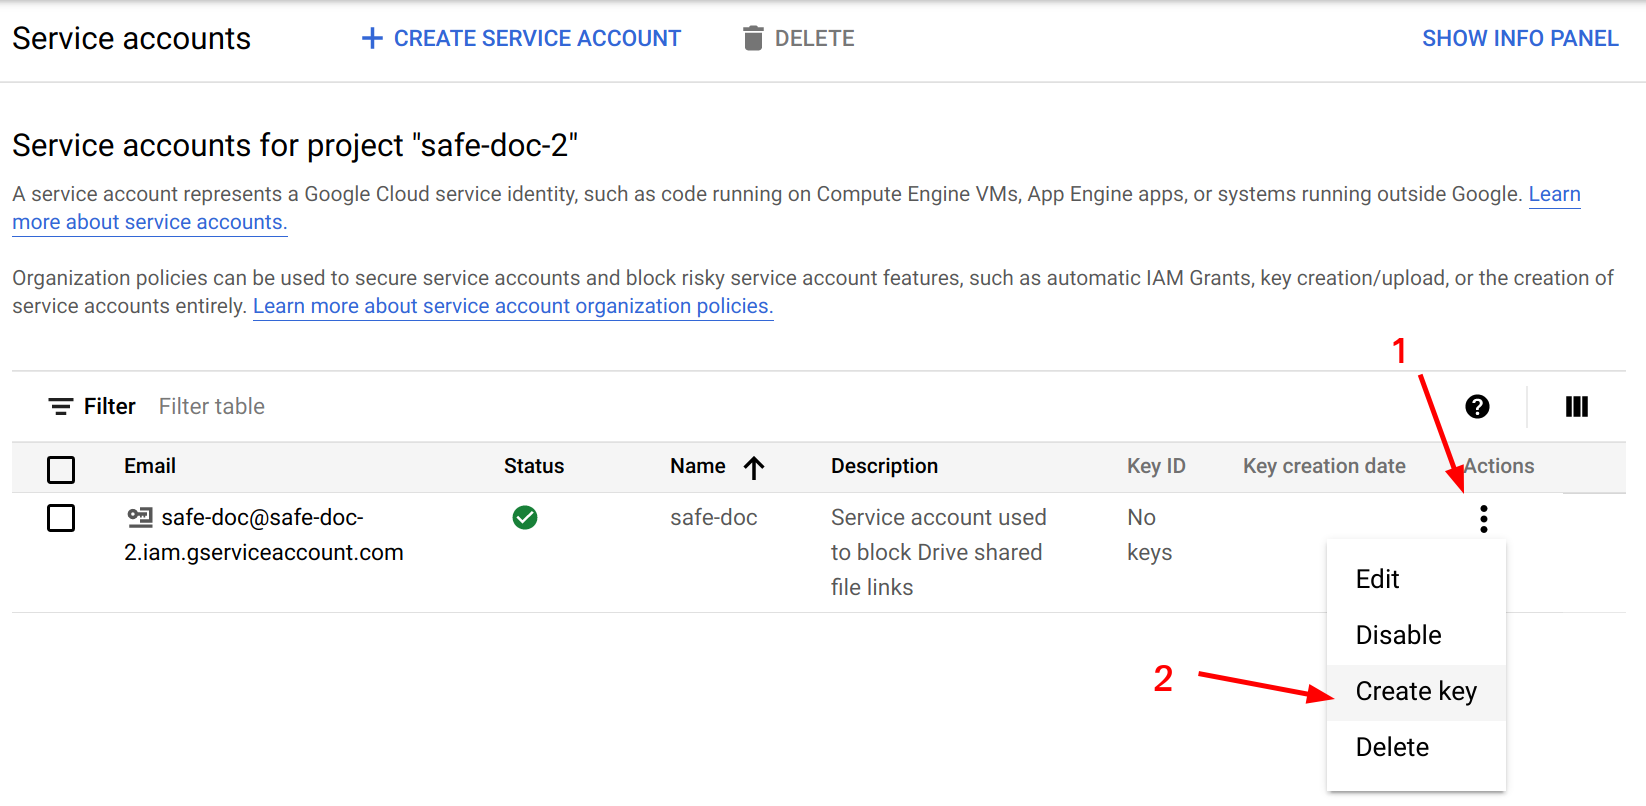 Create key for service account